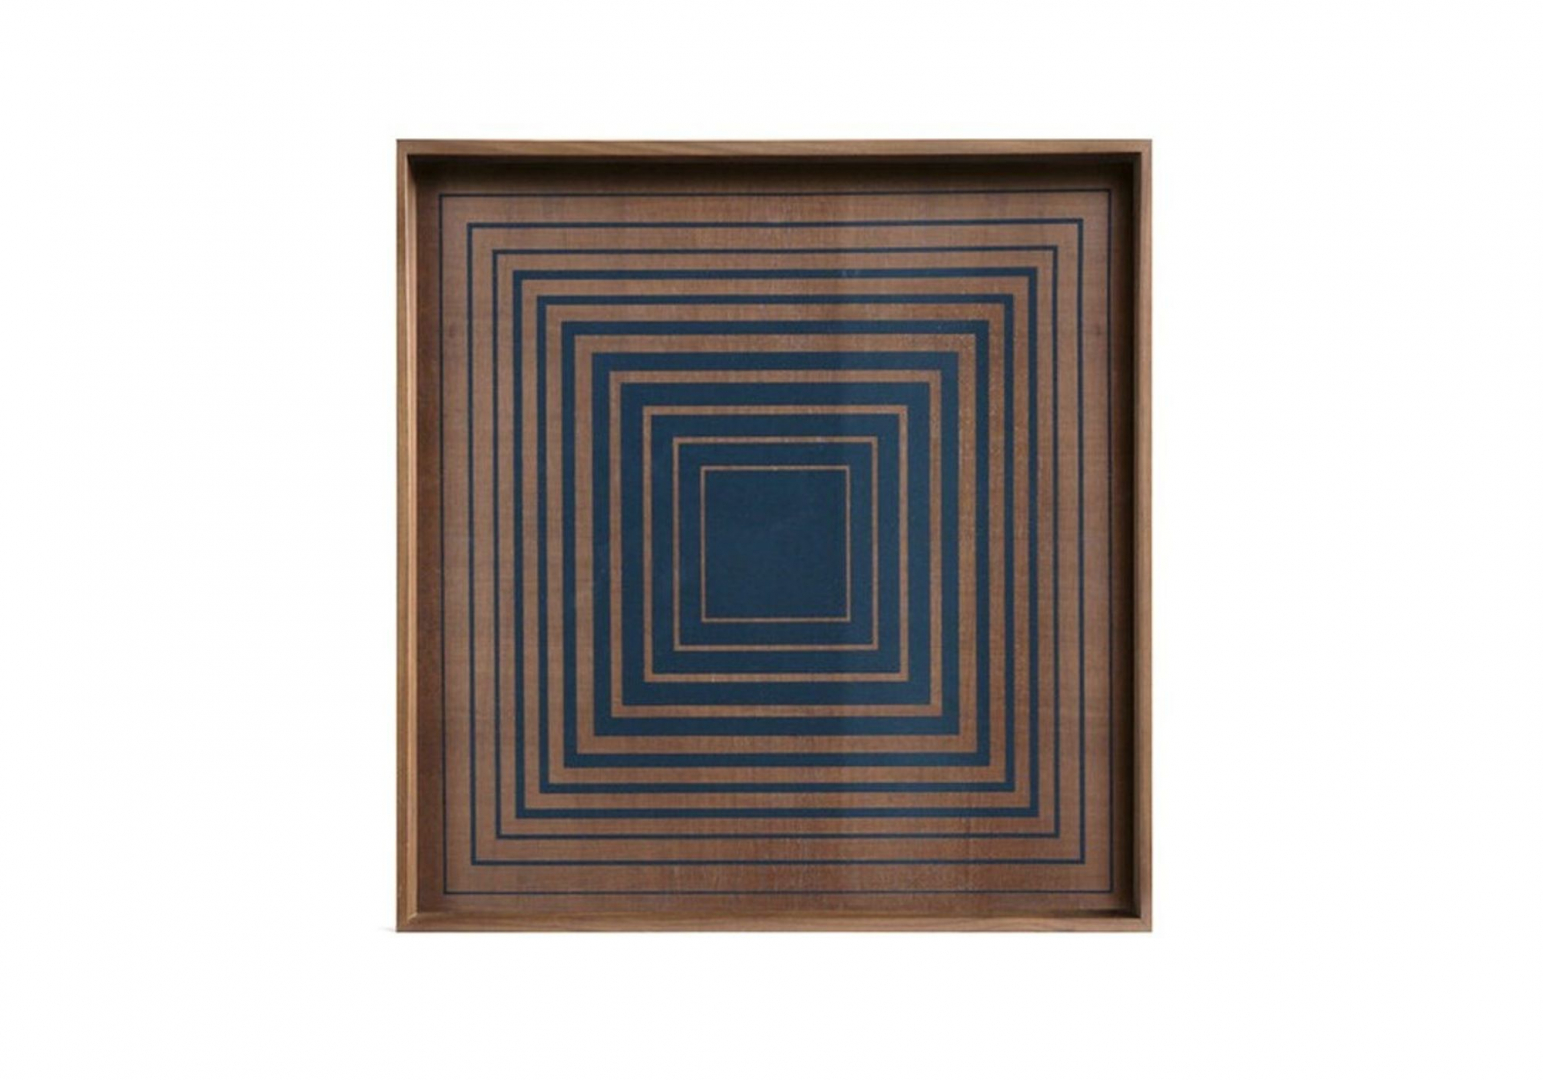 Plateau Ink Square glass - ETHNICRAFT ACCESSOIRES